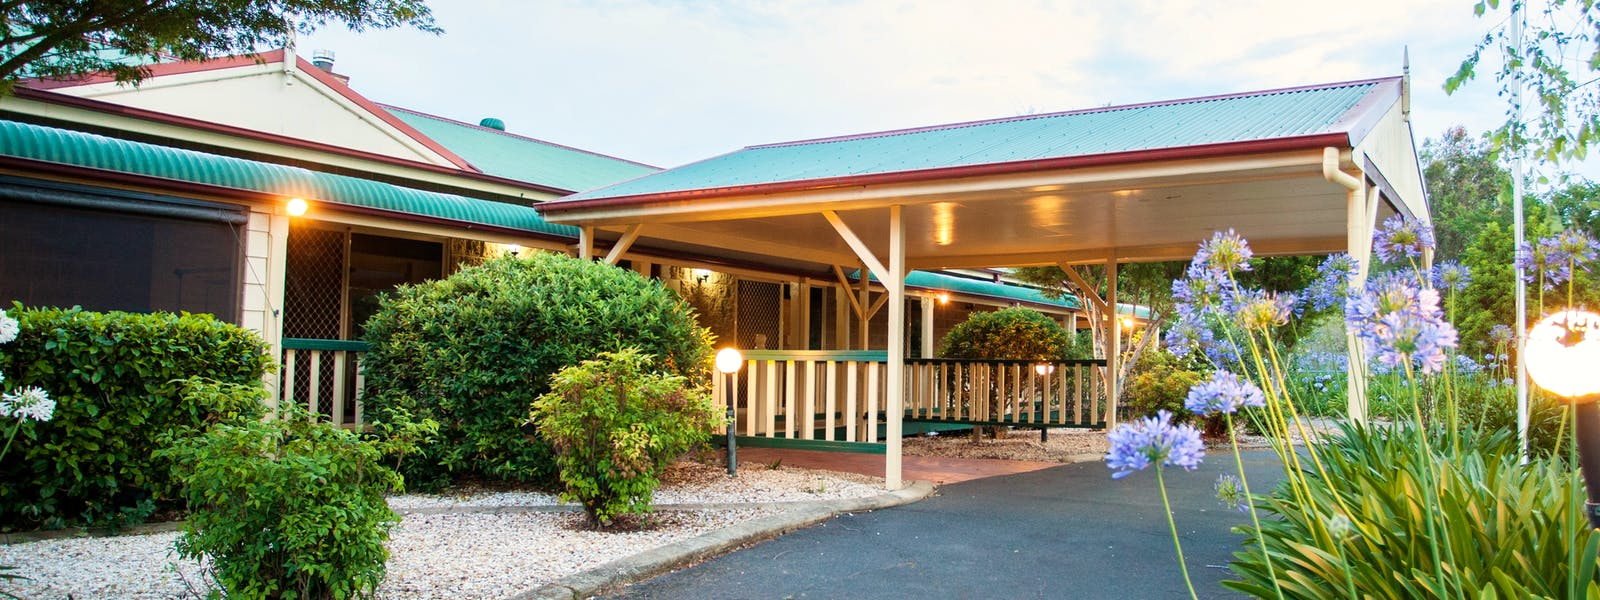 Bonville Lodge Accommodation Coffs Harbour